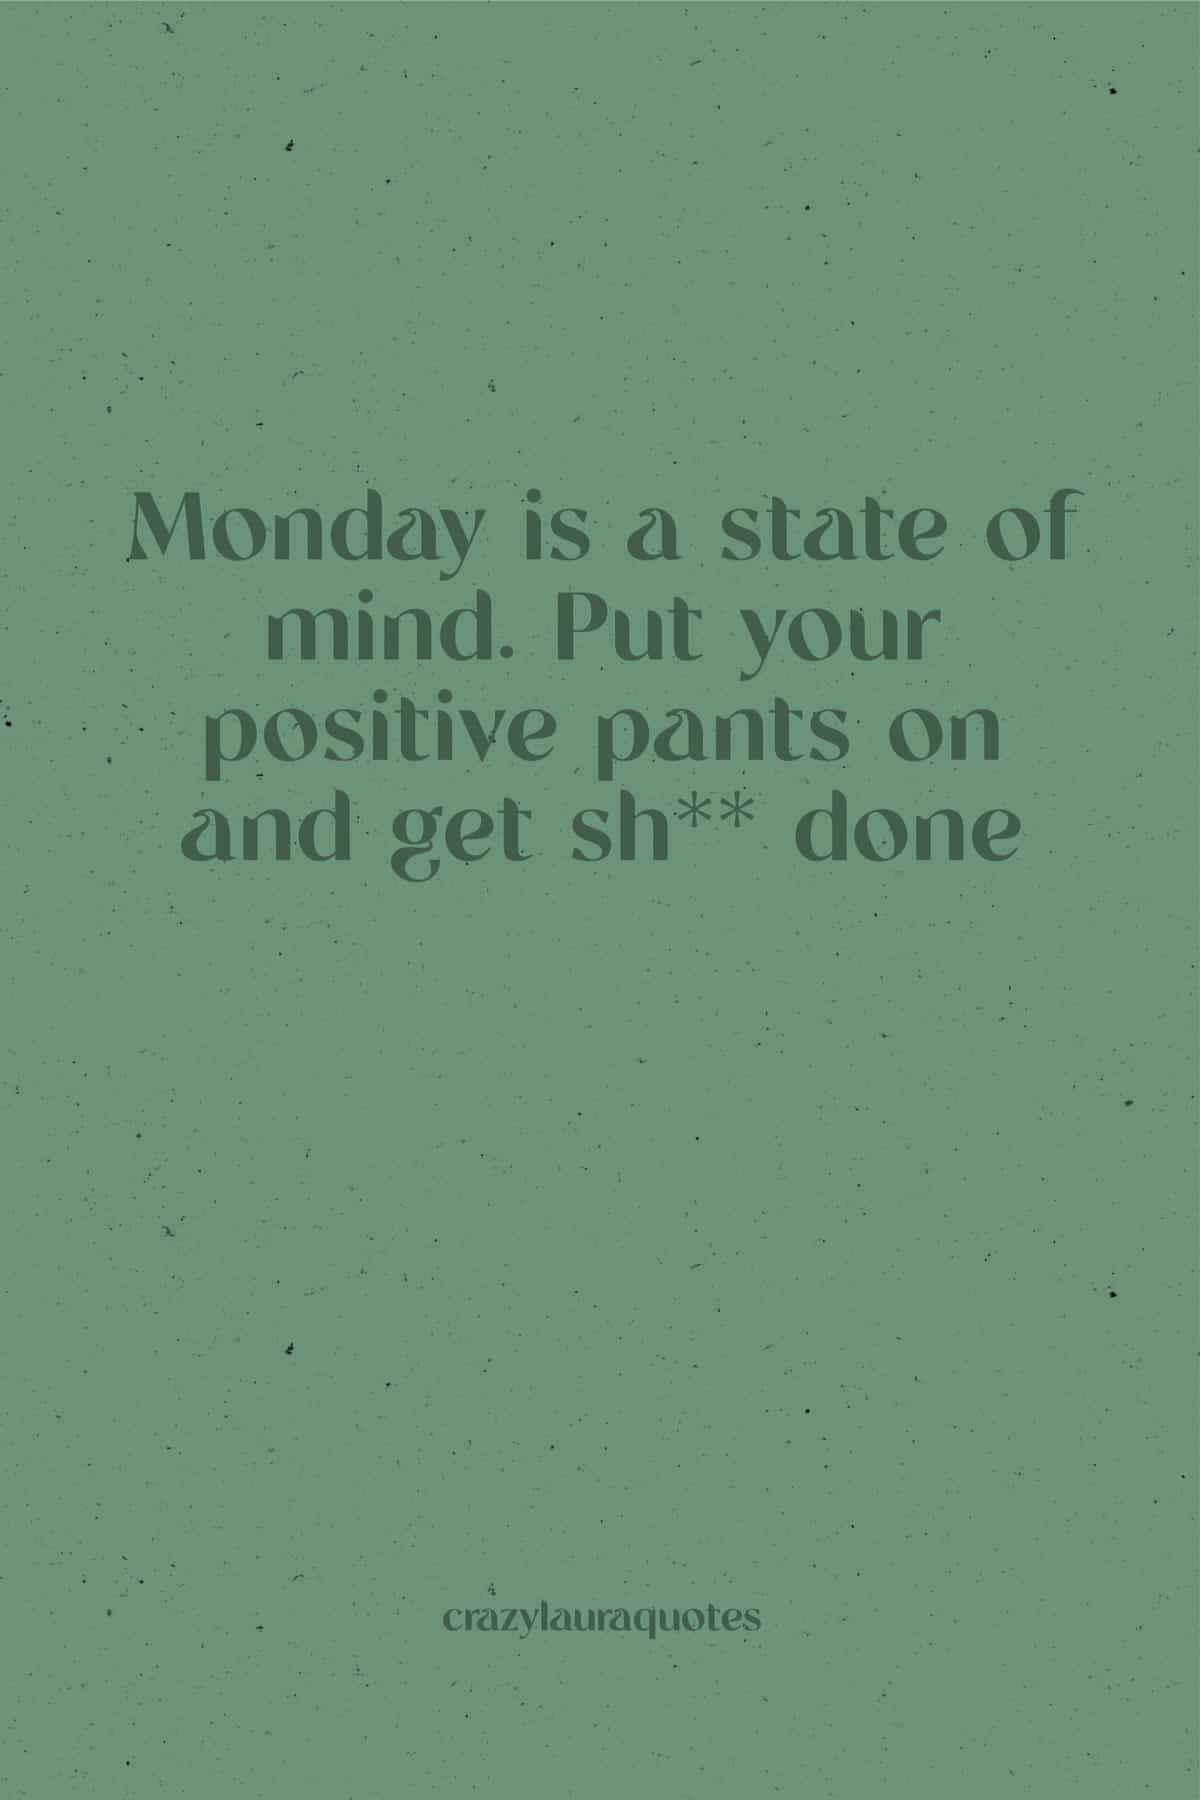 sayings to motivate you on monday morning